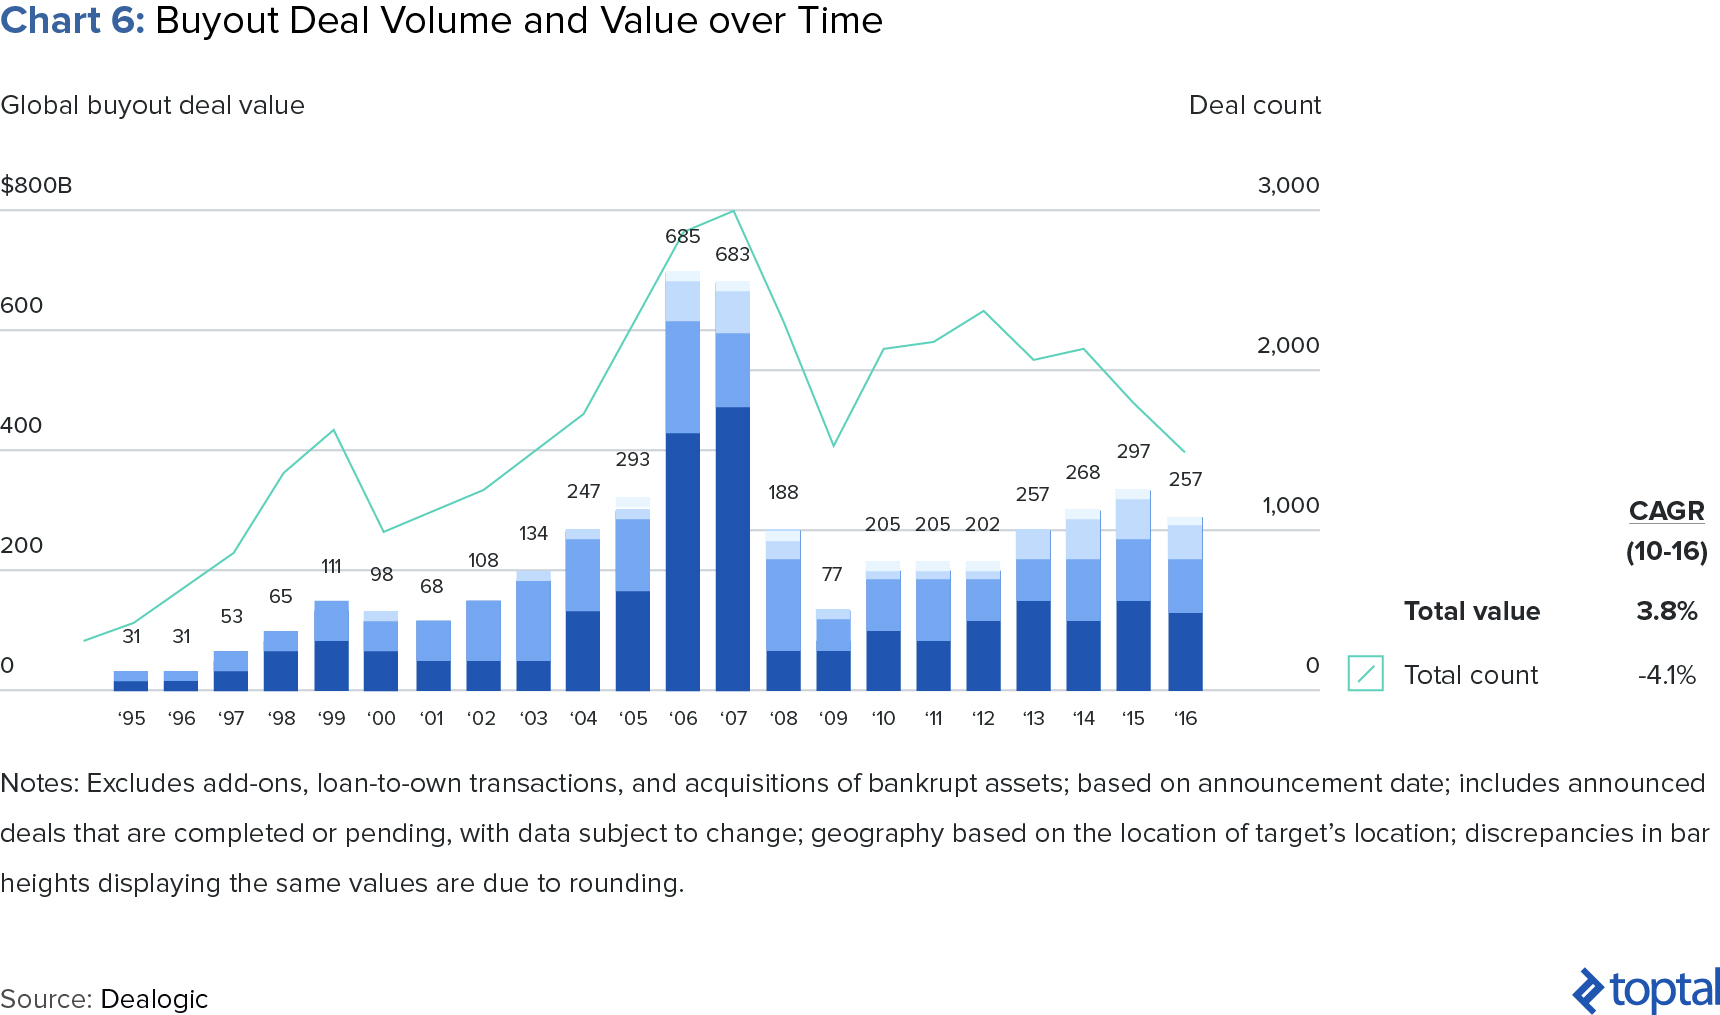 Chart 6: Buyout Deal Volume and Value over Time